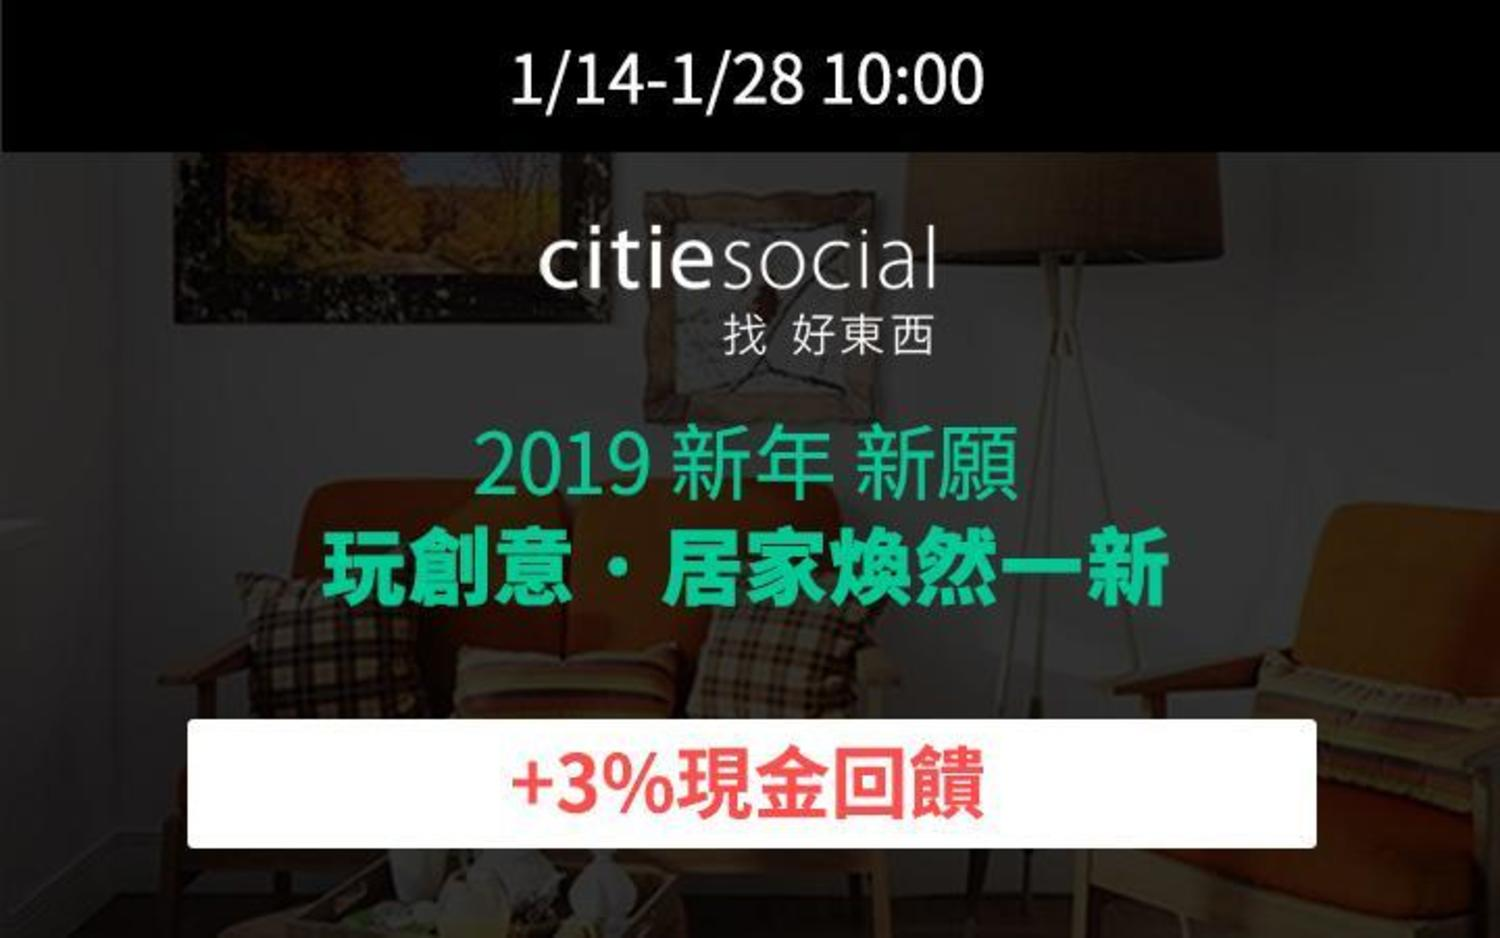 citiesocial 春節活動